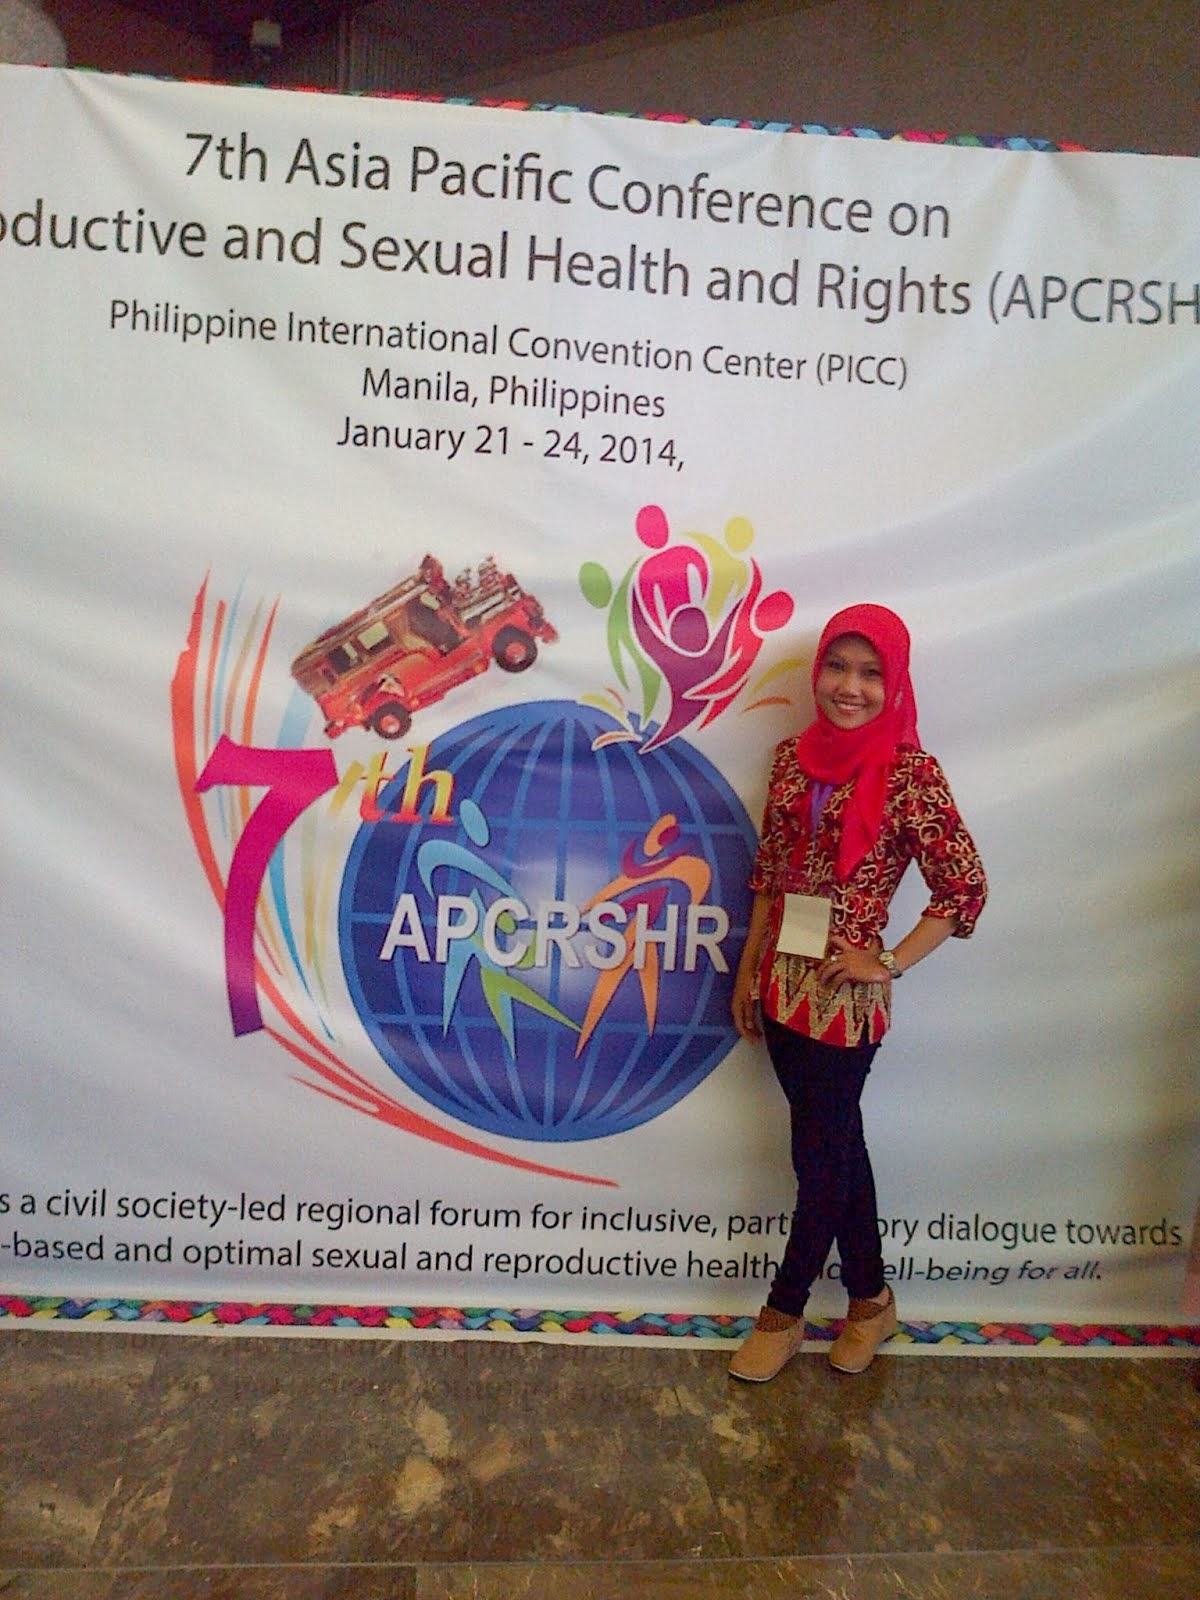 7th Asia Pacific Conference on Reproductive and Sexual Health and Rights (APCRSHR)